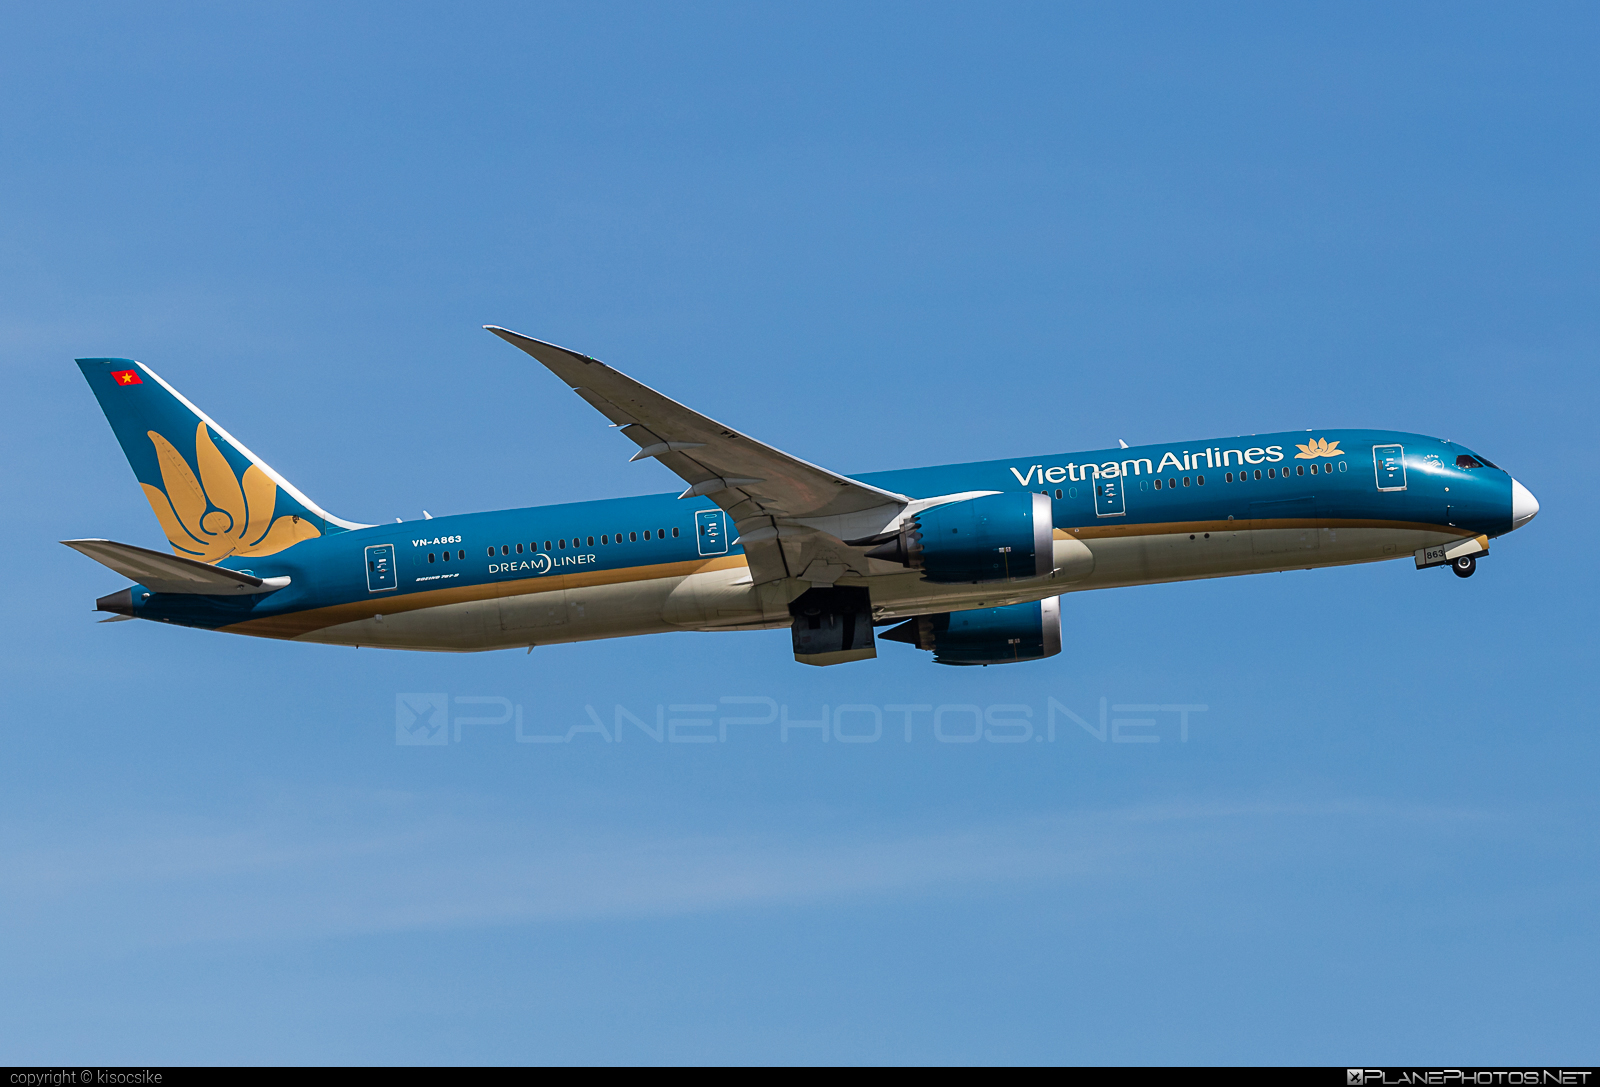 Boeing 787-9 Dreamliner - VN-A863 operated by Vietnam Airlines #b787 #boeing #boeing787 #dreamliner